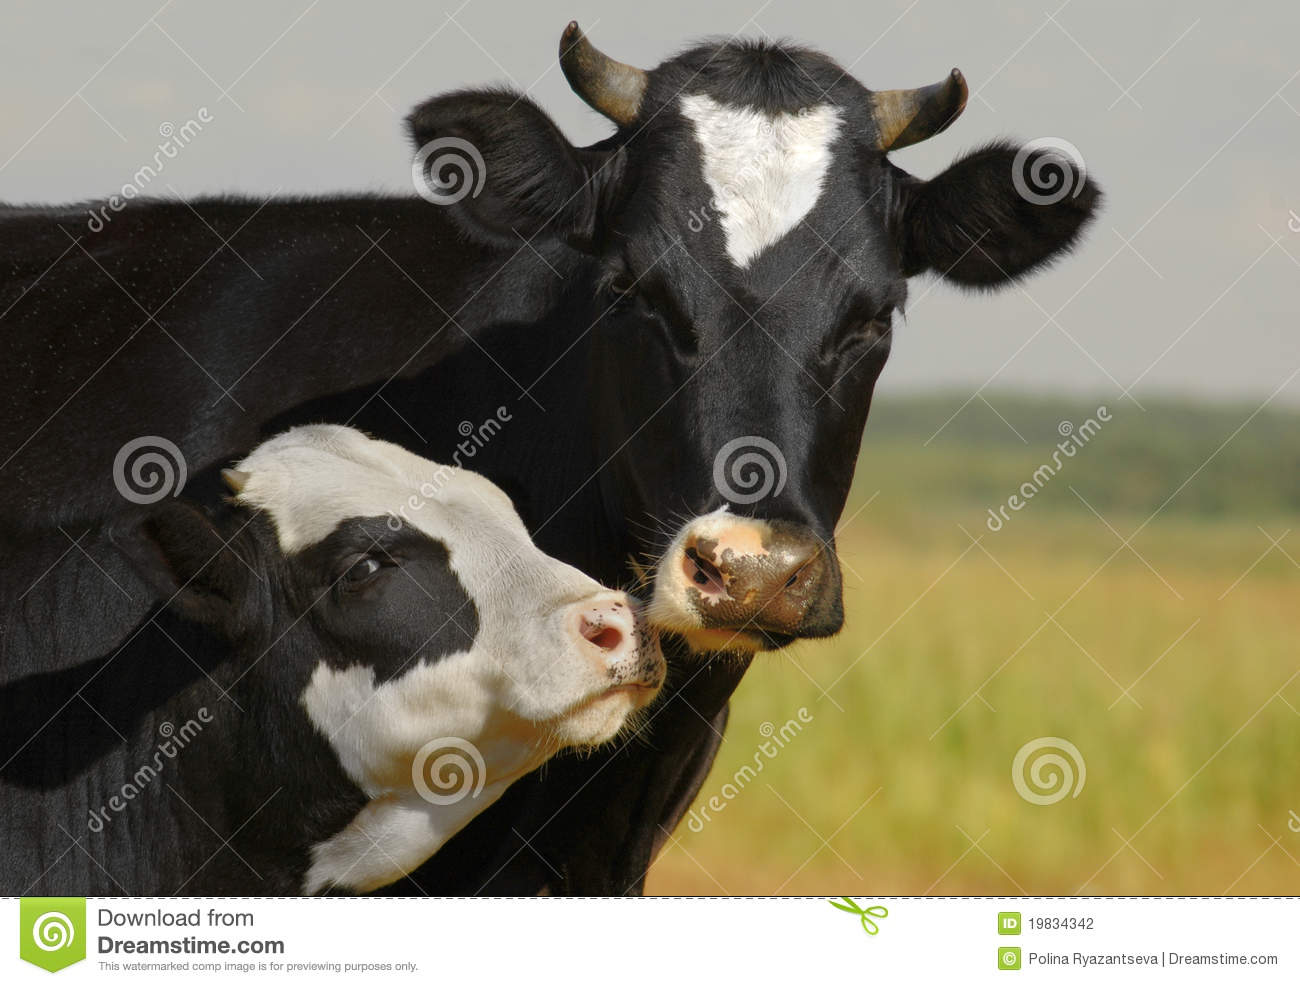 Cow and her calf kissing